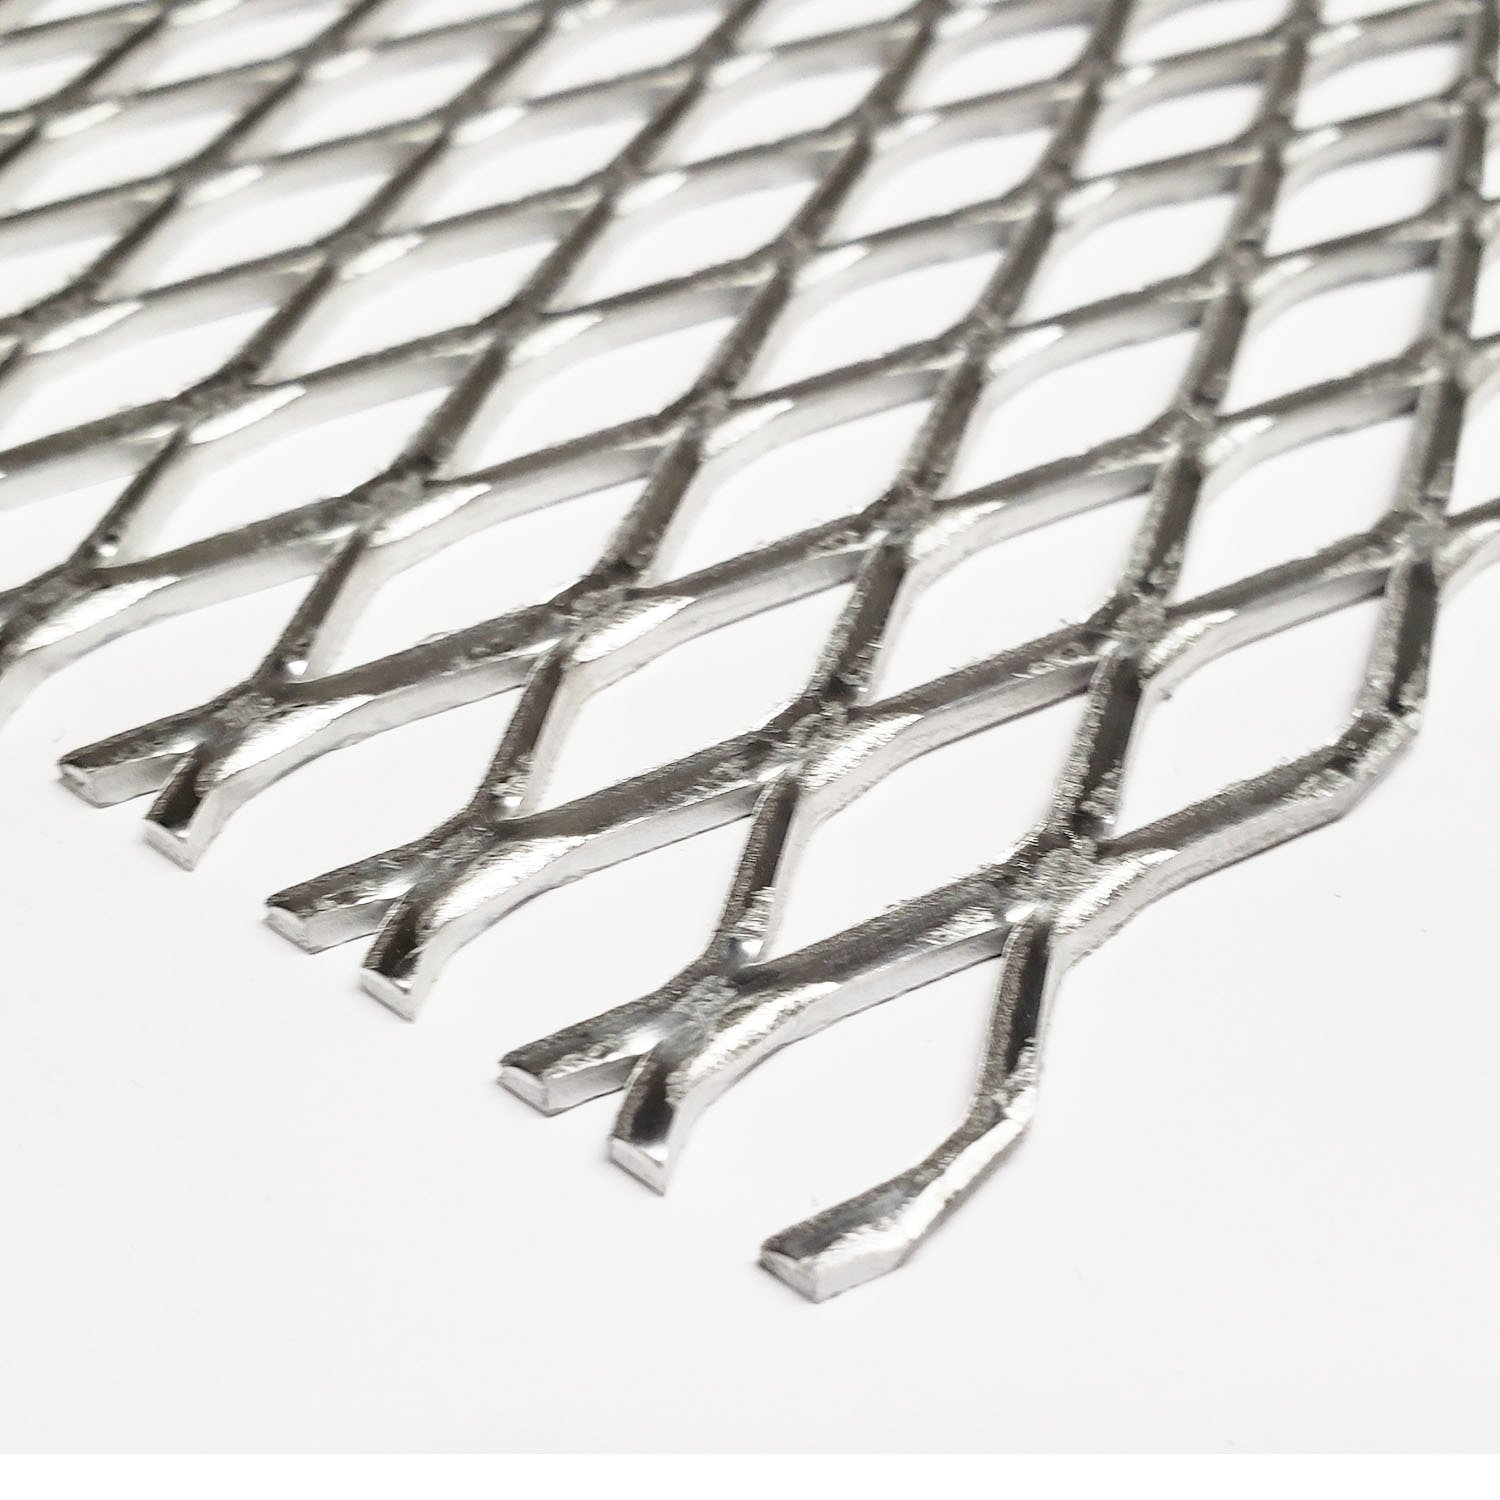 Online Metal Supply Aluminum Flattened Expanded Sheet, Style: 1/2-.081, 24 inches x 24 inches